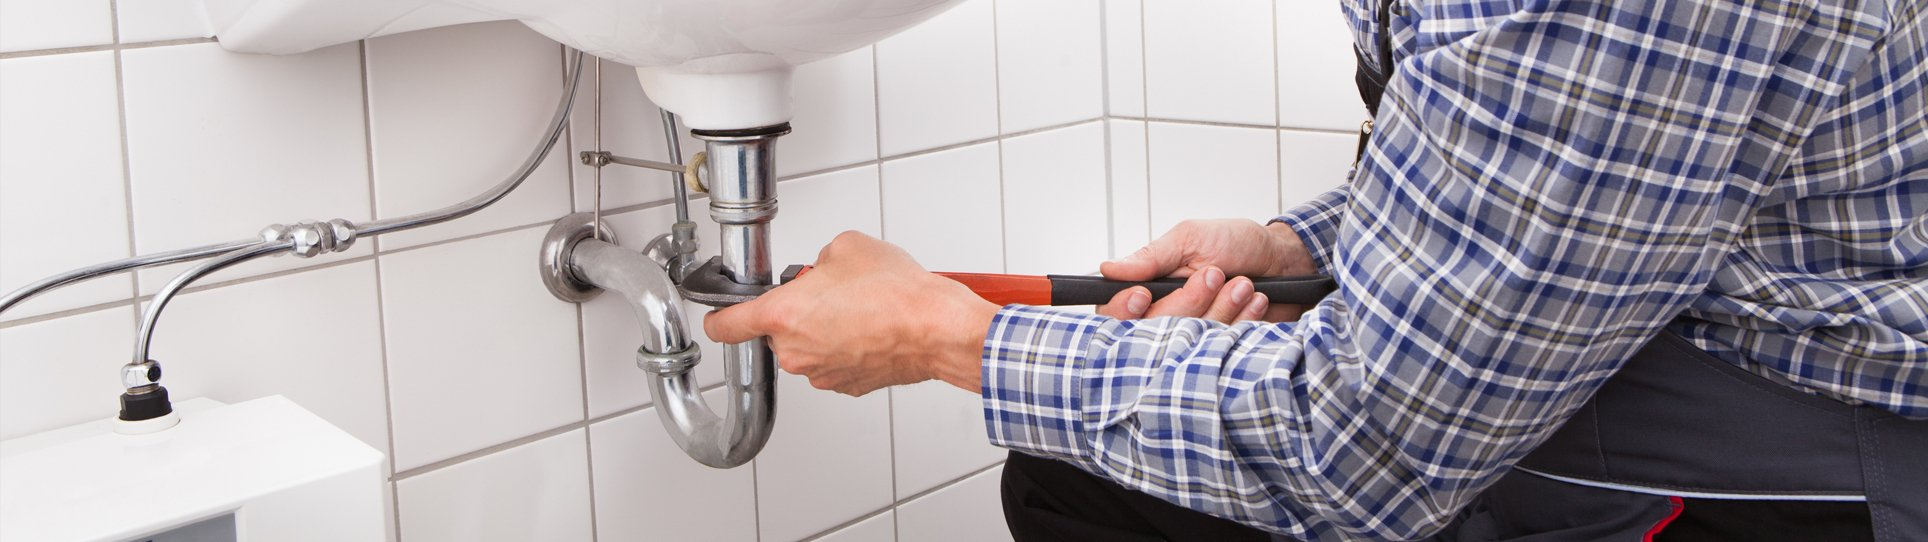 a plumber fixing a toilet